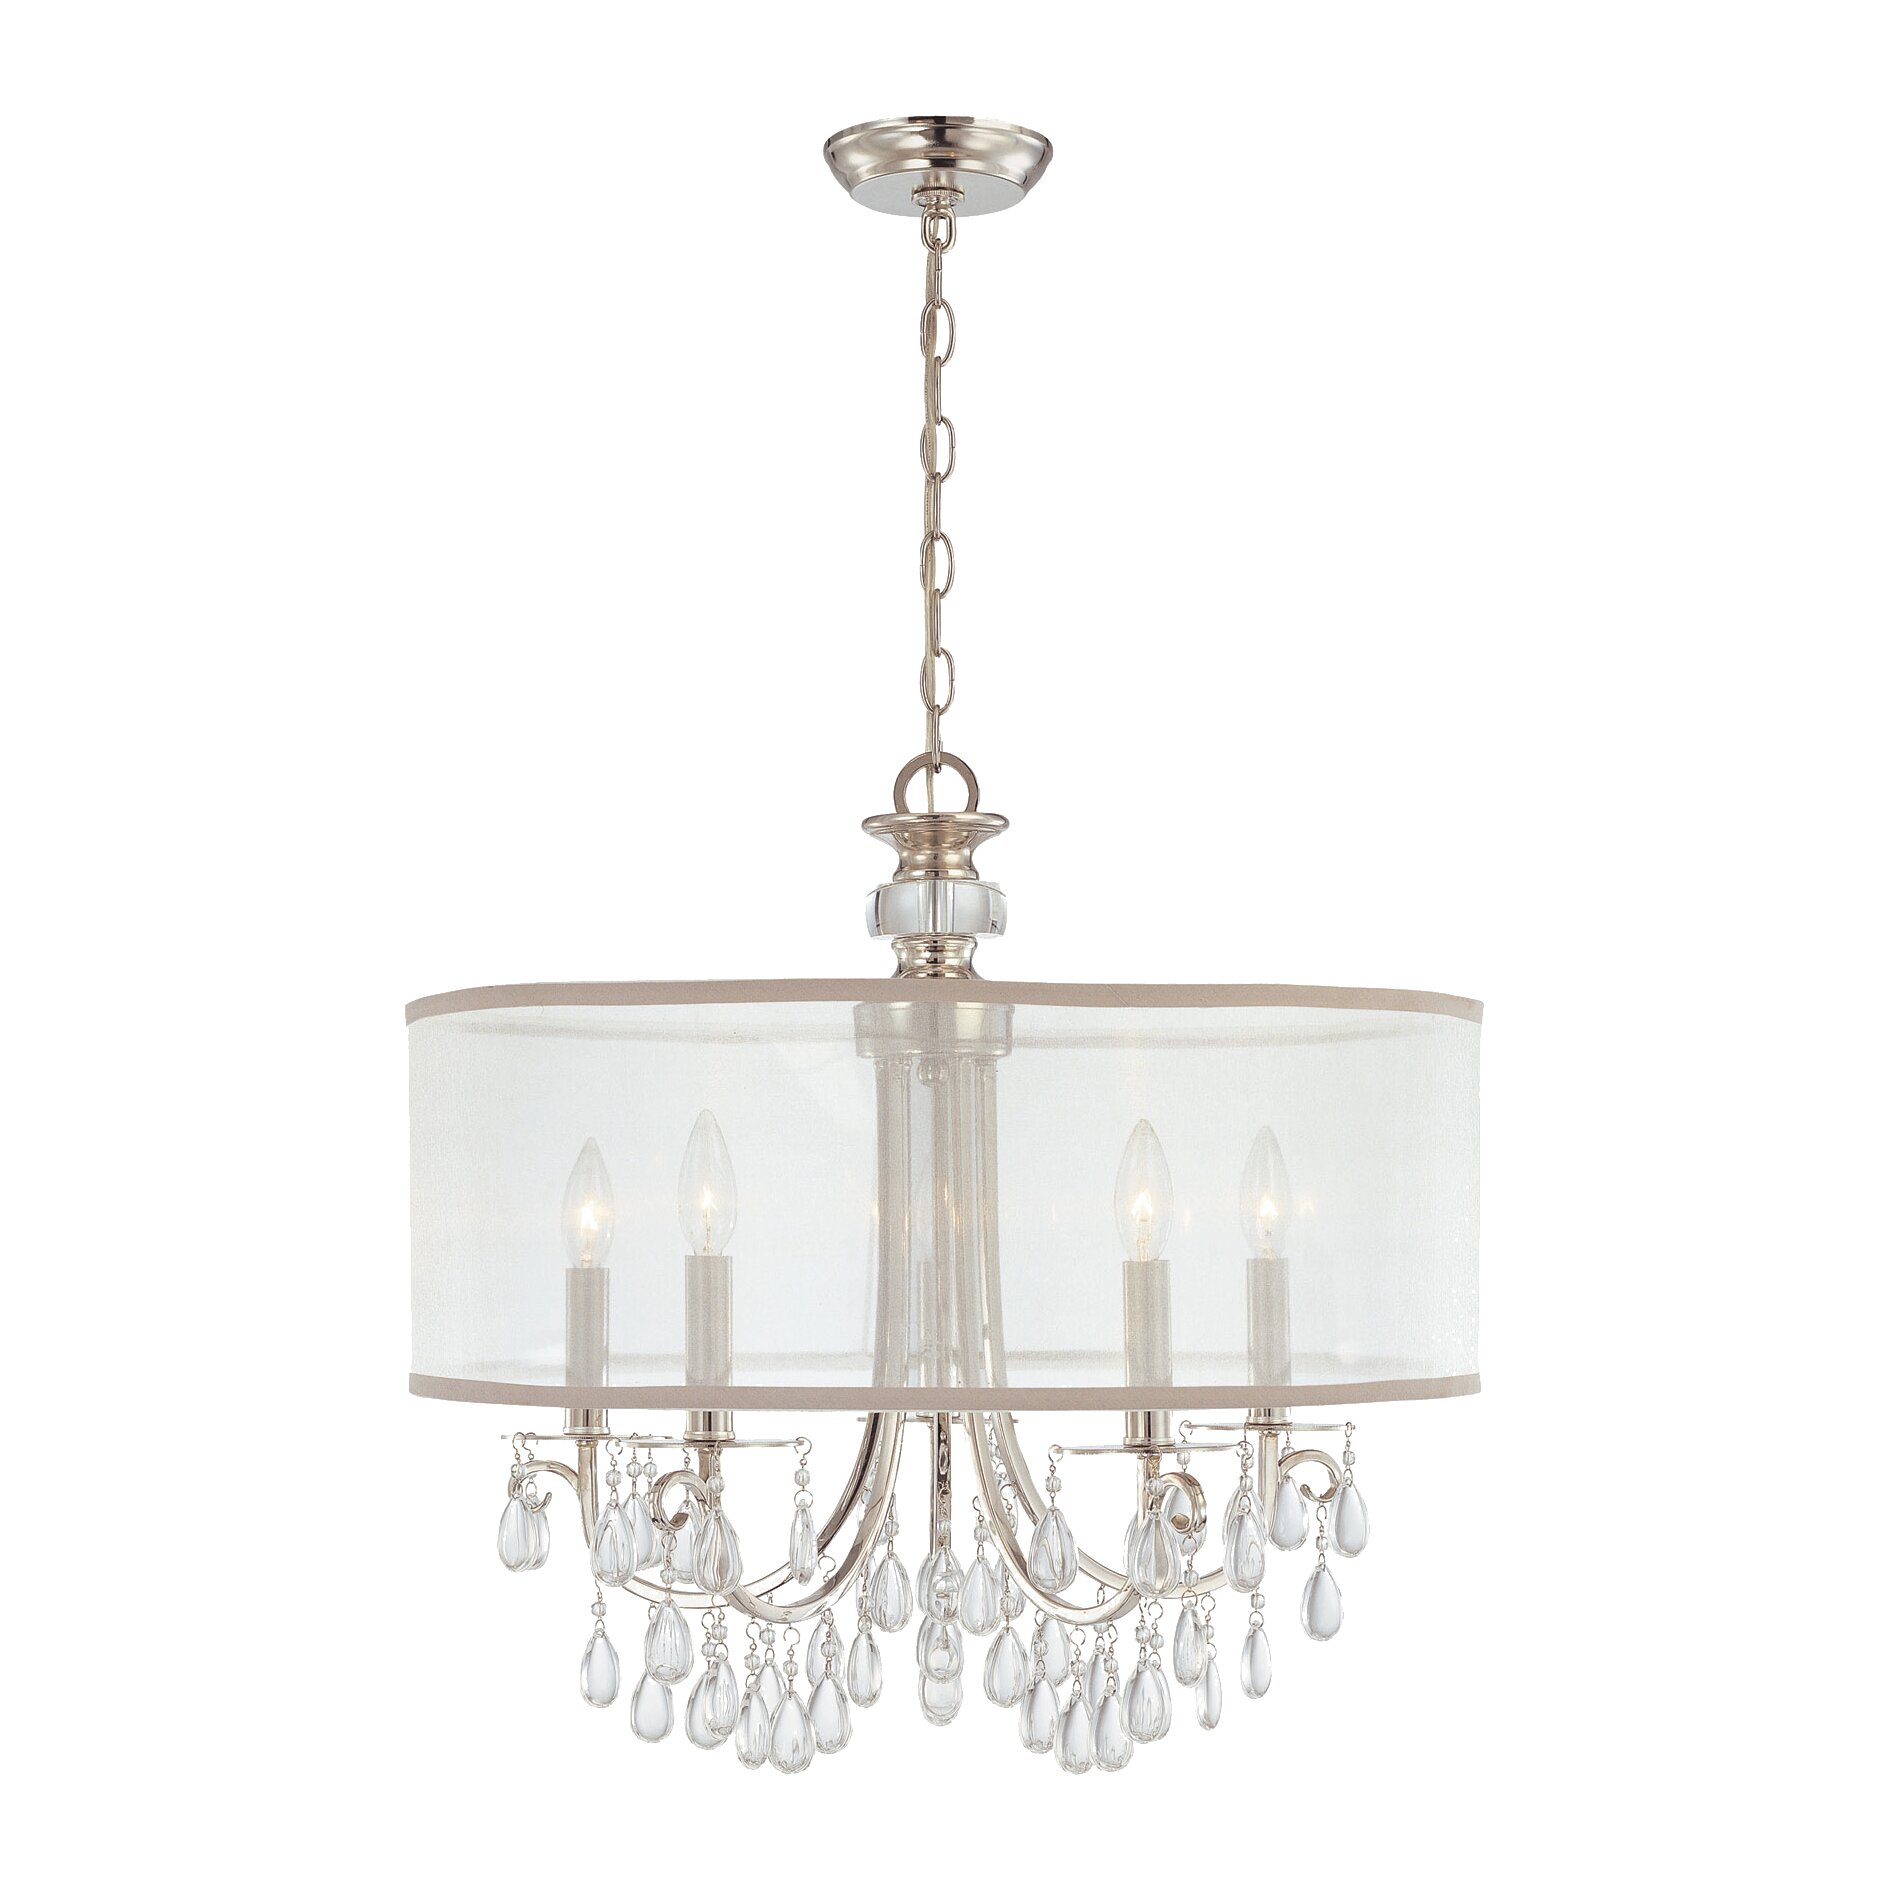 Wayfair Chandelier: Crystorama Hampton 5 Light Drum Chandelier & Reviews